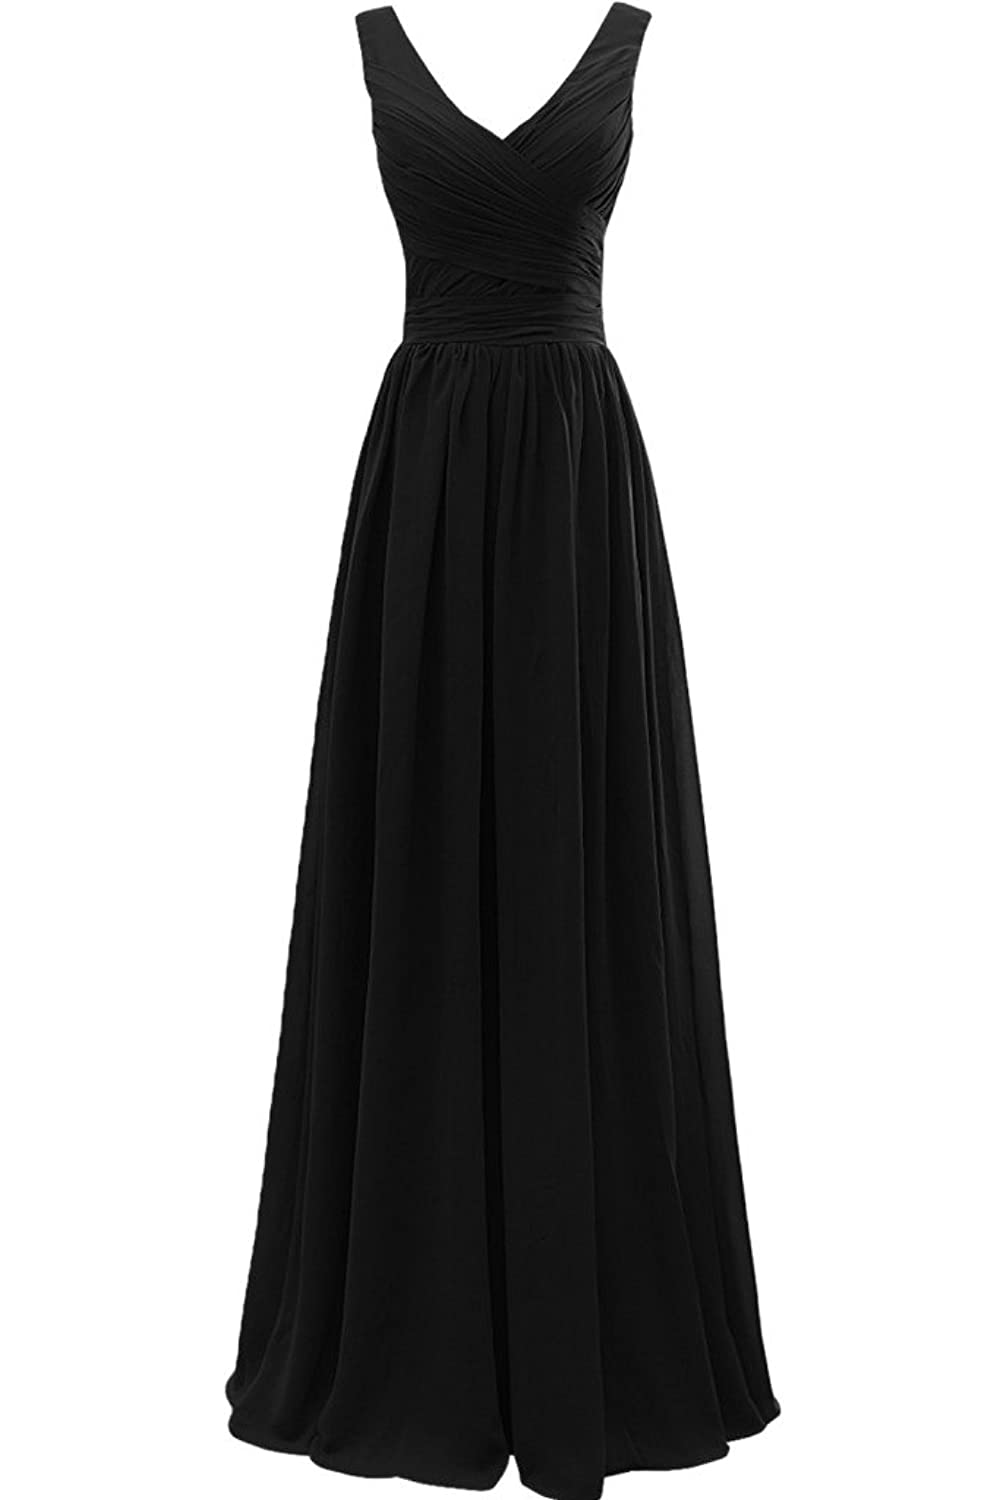 Sunvary Graceful A Line Chiffon V-Neck Sleeveless Party Dresses Evening Dress Prom Gowns